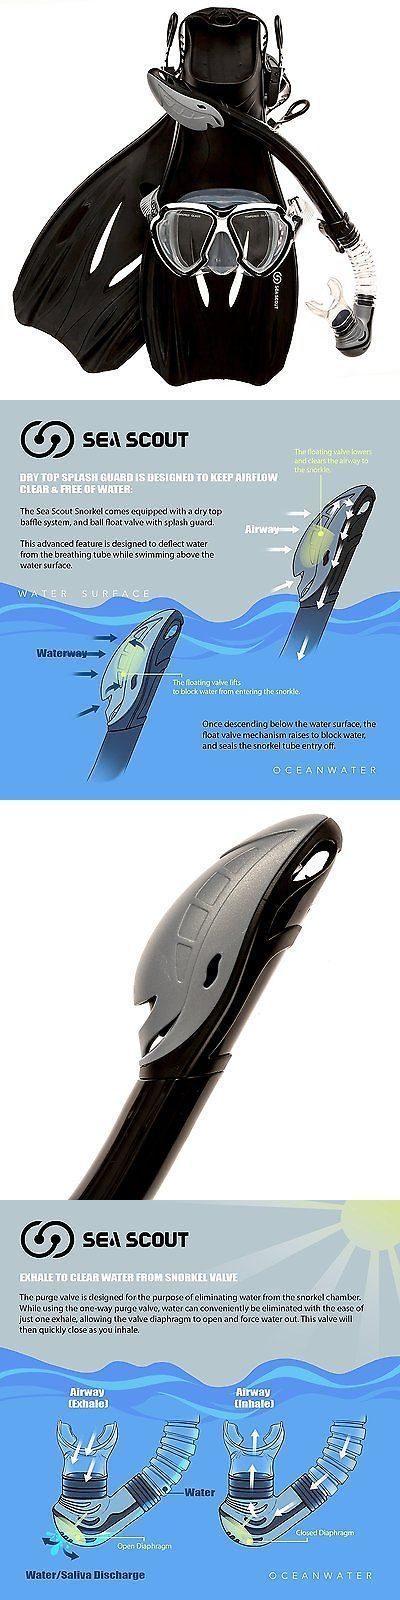 Snorkels and Sets 71162: Panoramic Mask Fins Snorkel Swim Gear Promate Set Snorkeling Cuba Dive New -> BUY IT NOW ONLY: $49.66 on eBay! http://www.deepbluediving.org/best-scuba-diving-mask-reviews/ #ScubaDivingEquipmentandSites #scubadivingequipmentwatches